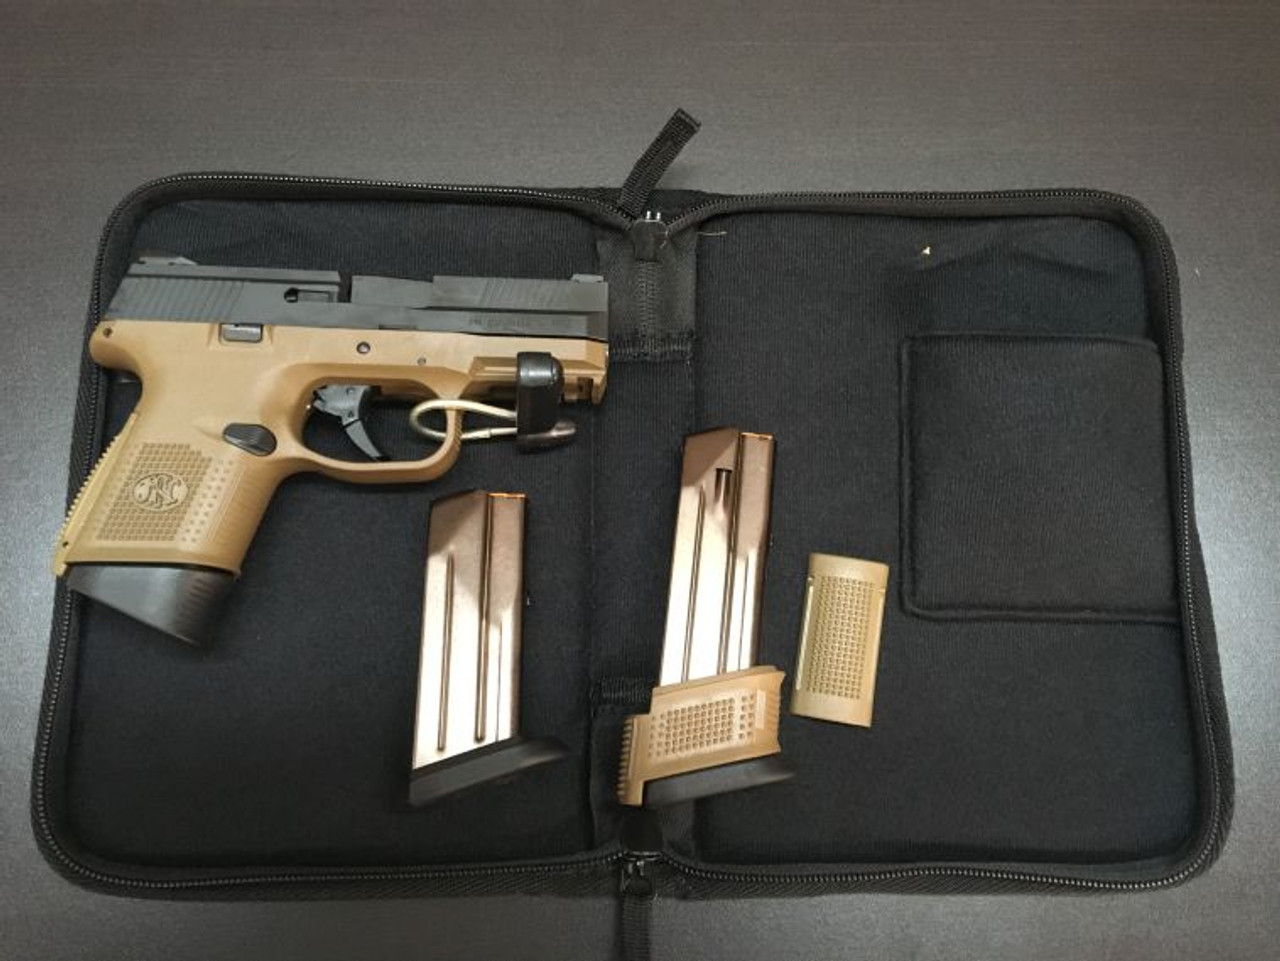 FN America FNS-9c Compact FDE 9mm Pistol with 3 magazines and an FNH-USA Logo Soft Case